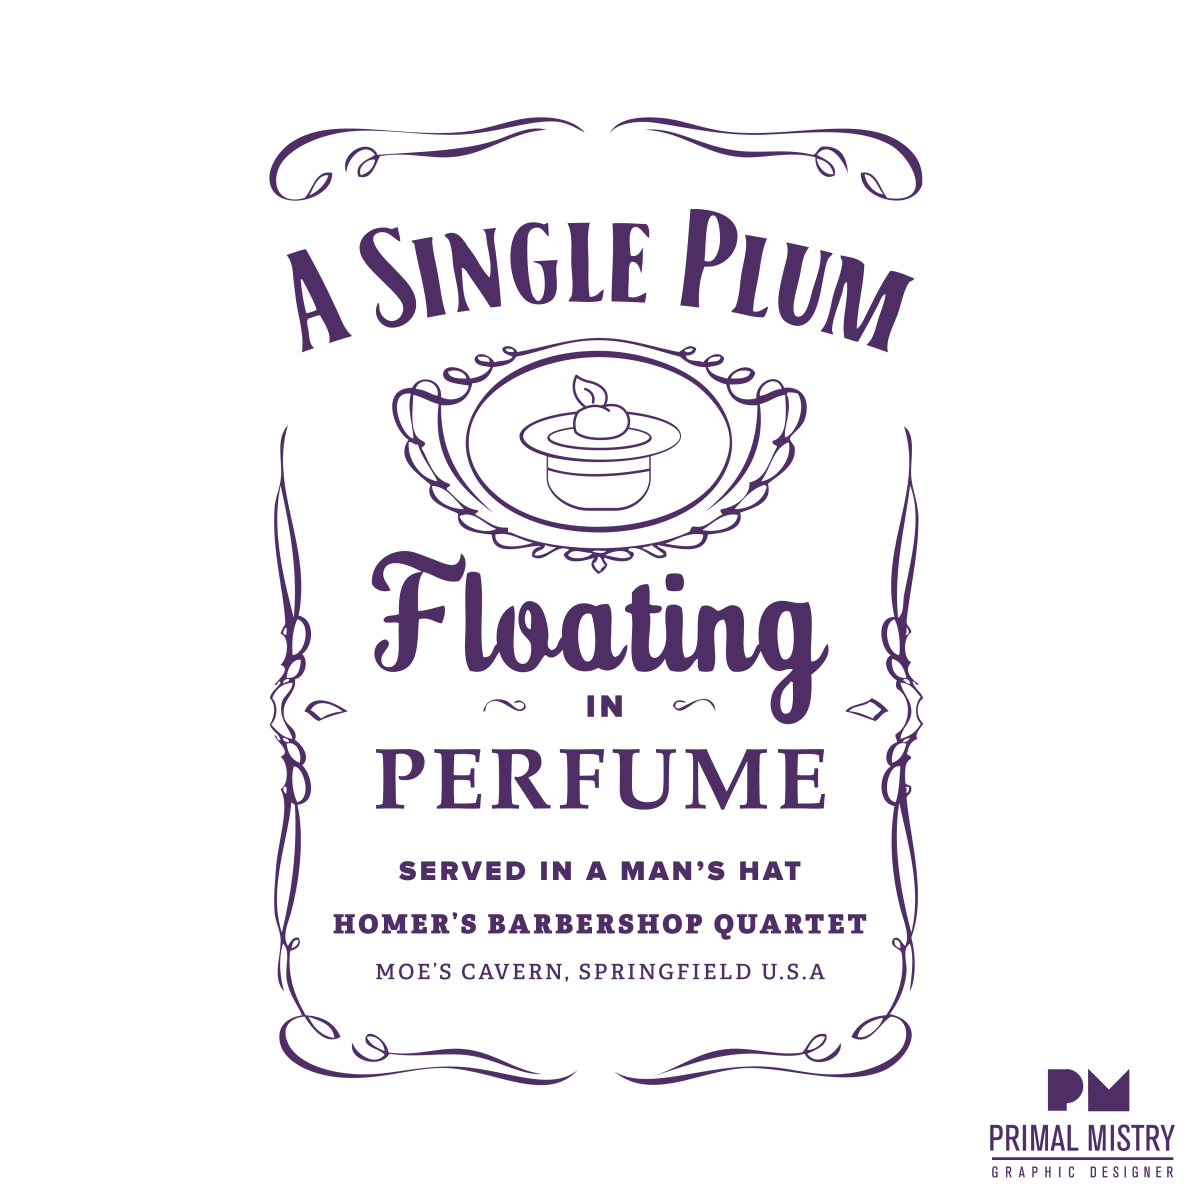 d0c95d34ede Single Plum Floating in Perfume Served in a Man s Hat